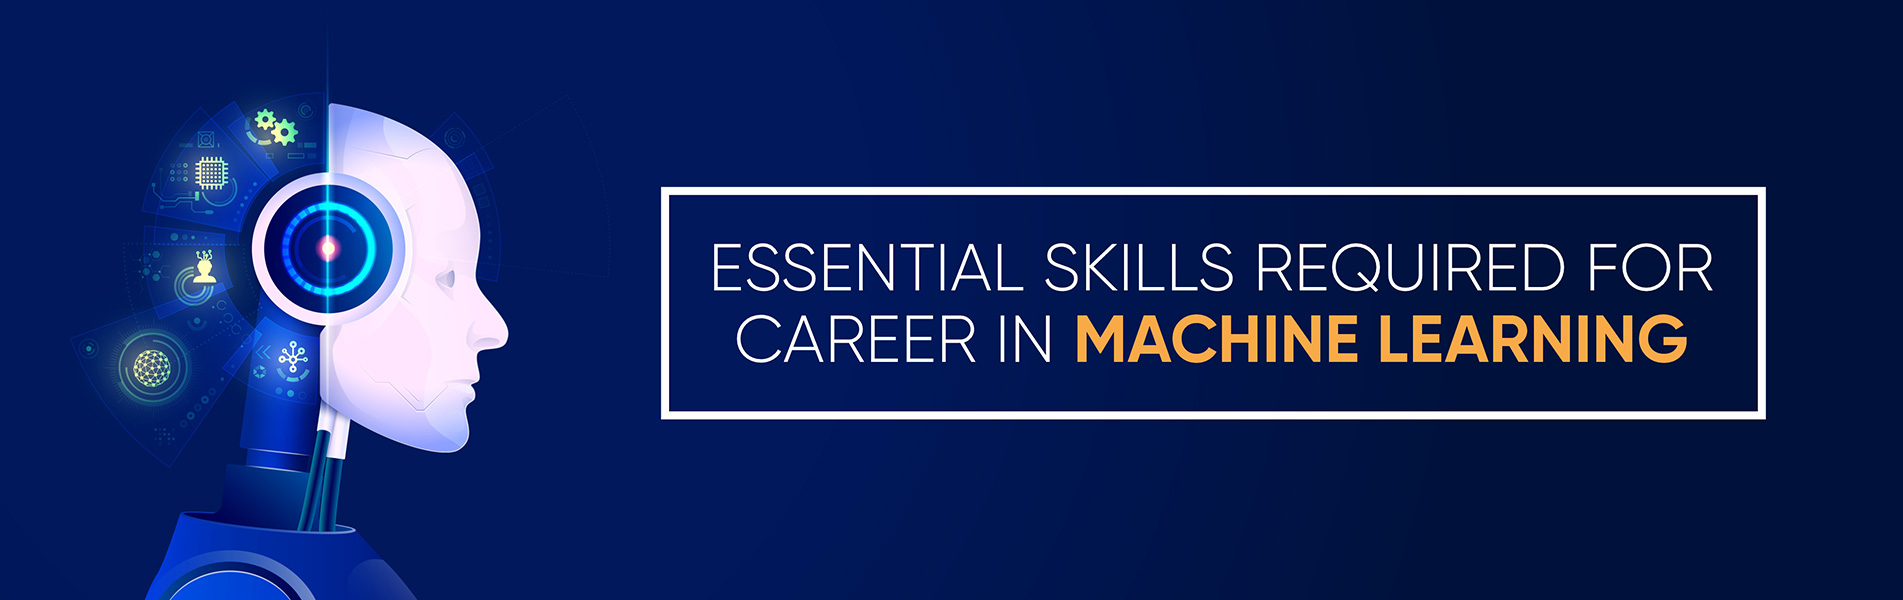 skills required, career in Machine Learning